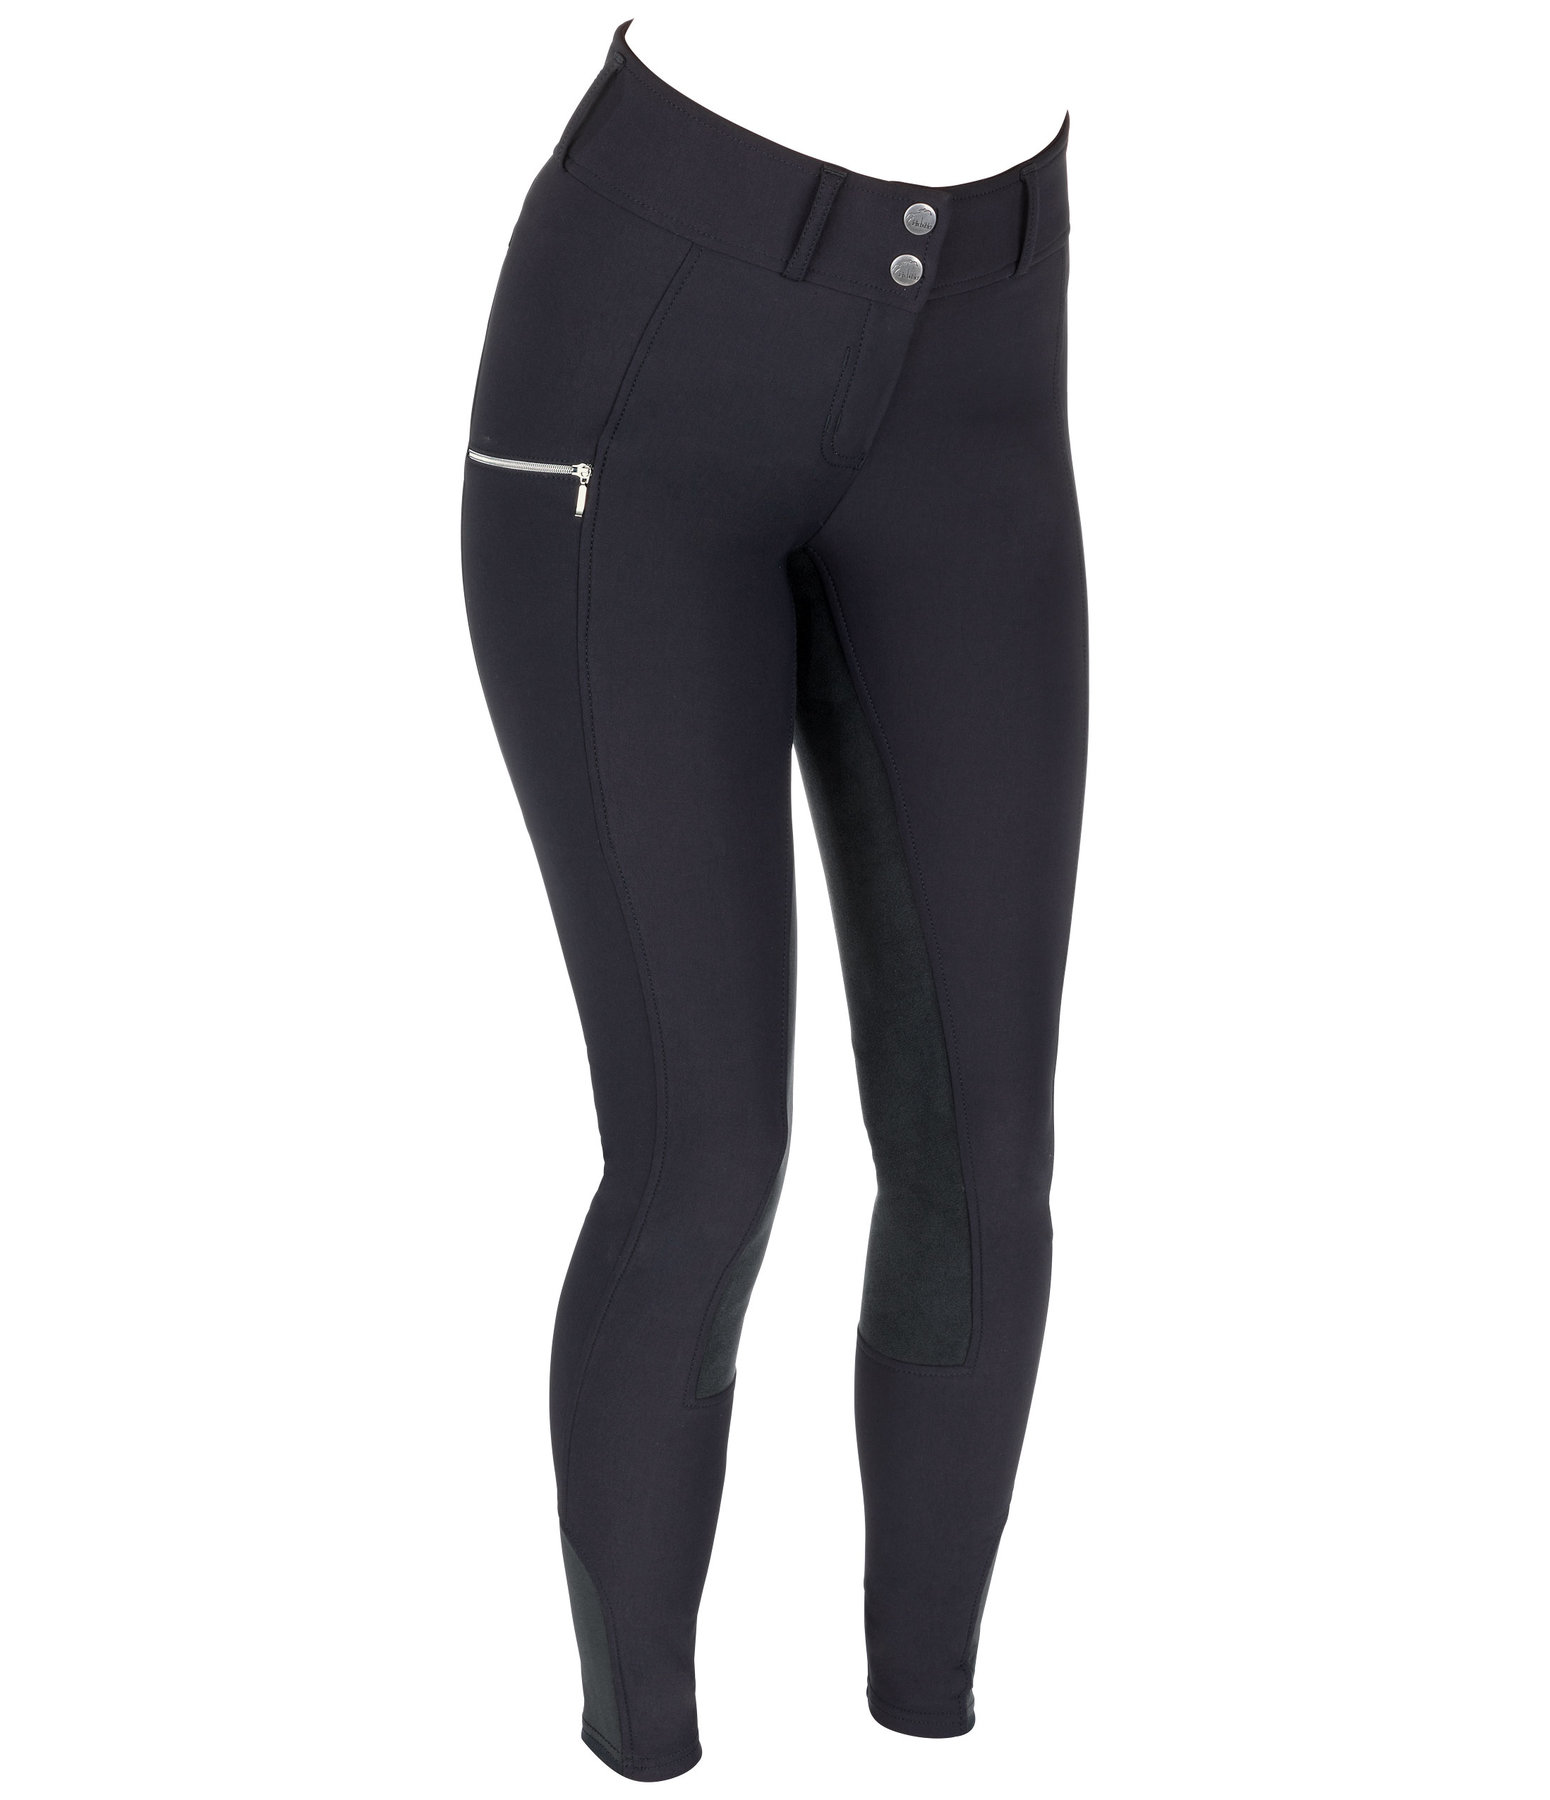 High-Waist Full-Seat Breeches Marleen